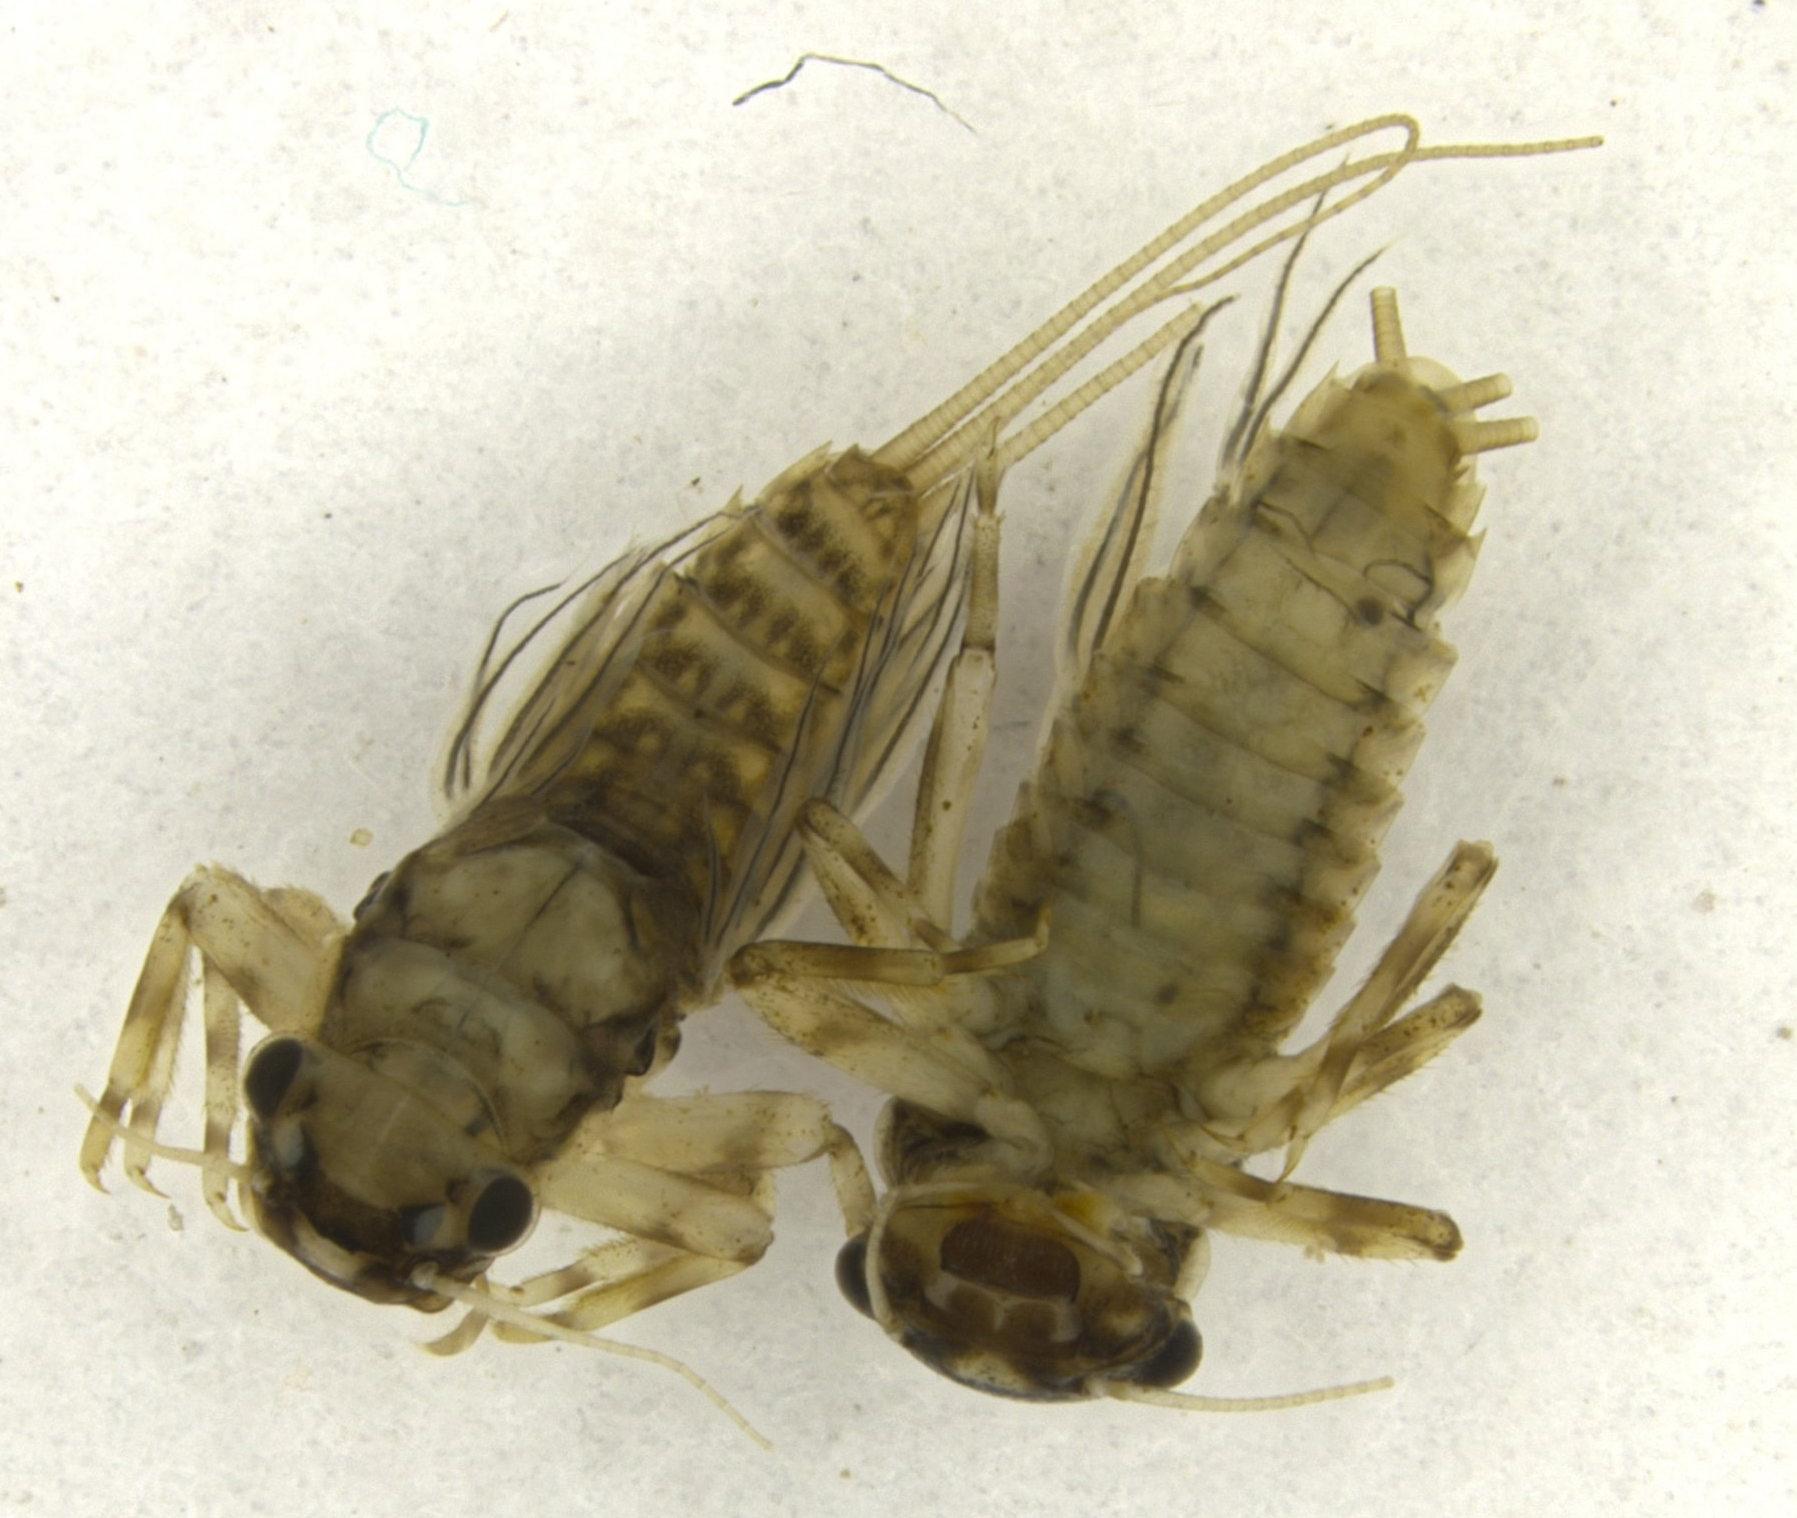 ...the insects found under the water, including these mayfly nymphs, with long filamentous gills that live on stream bottoms...